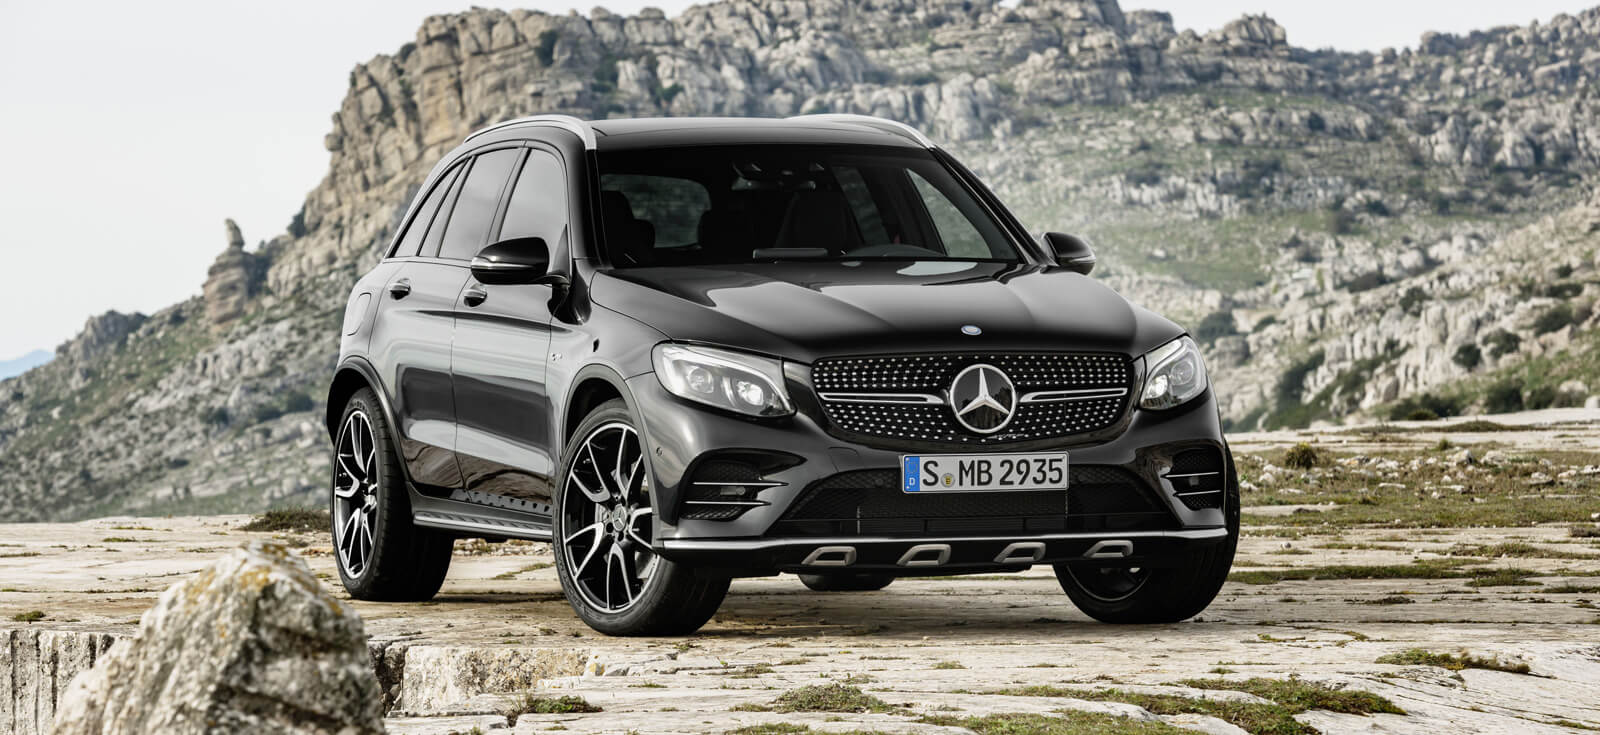 The new Mercedes-AMG GLC 43 4MATIC